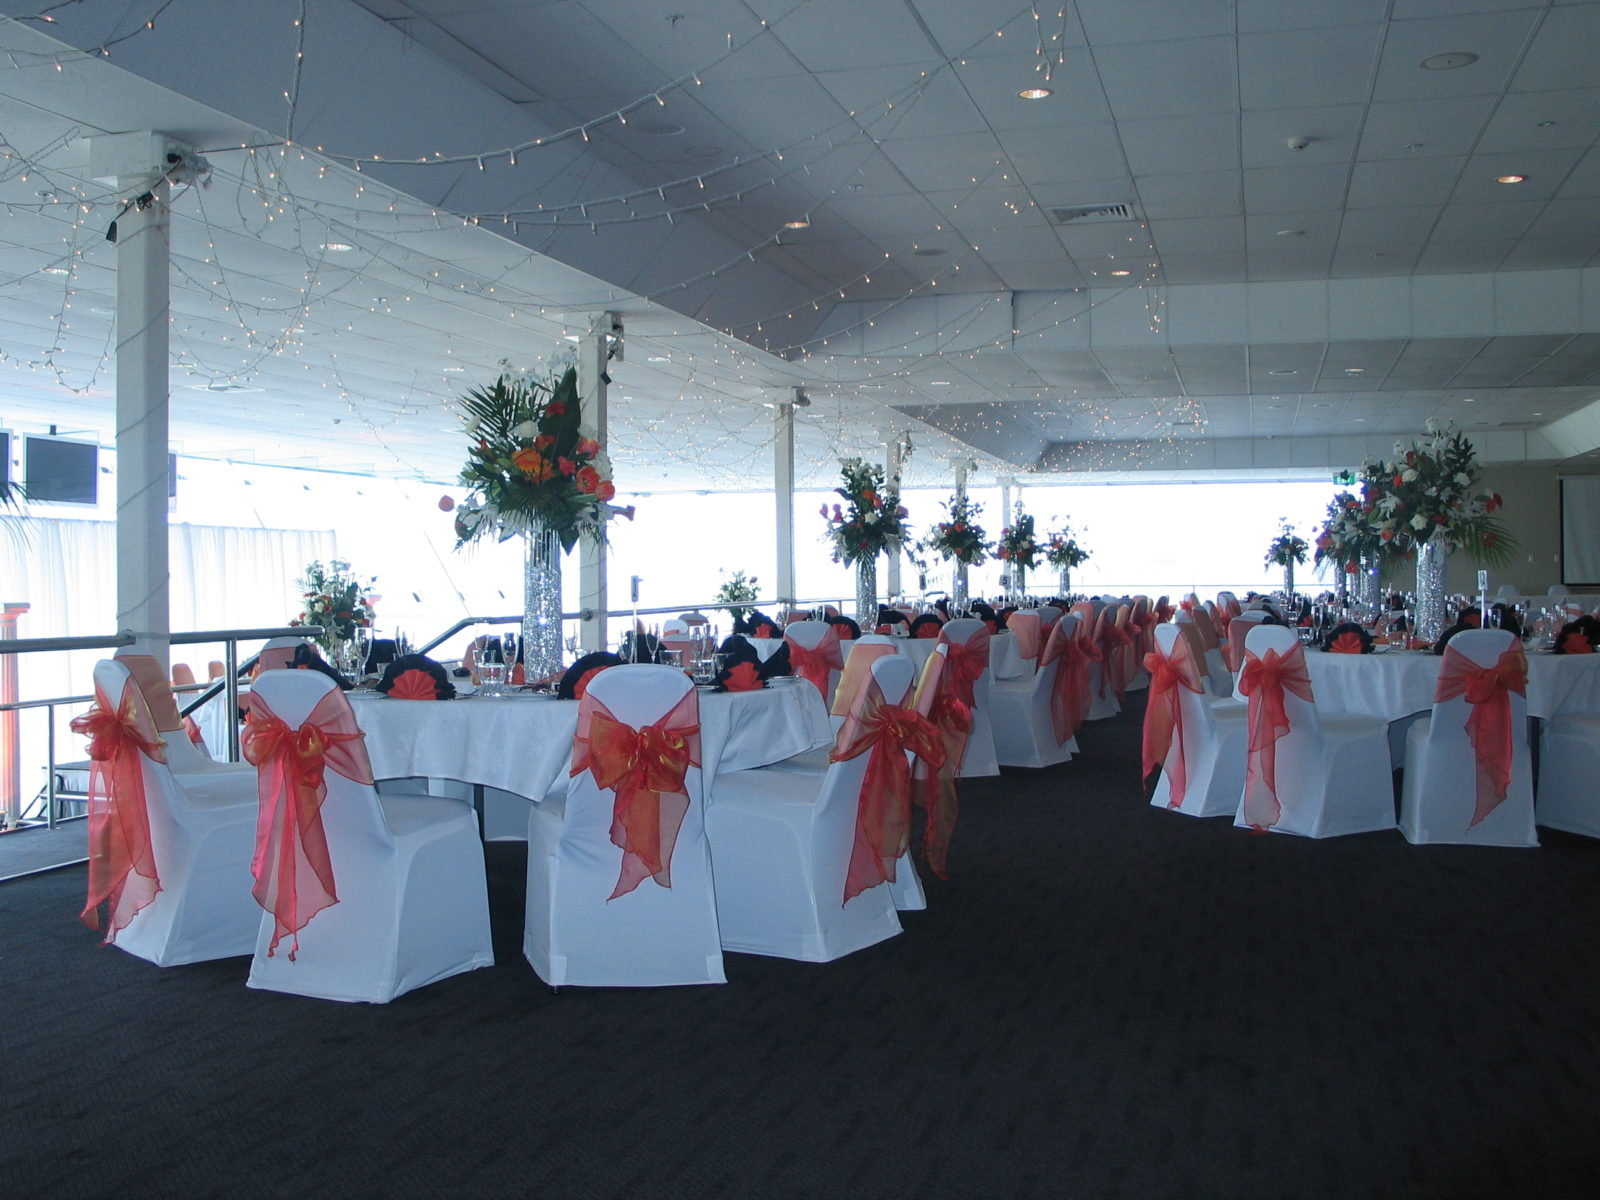 Wedding reception auckland reception venues rentals alexandra park enquire now view packages junglespirit Image collections